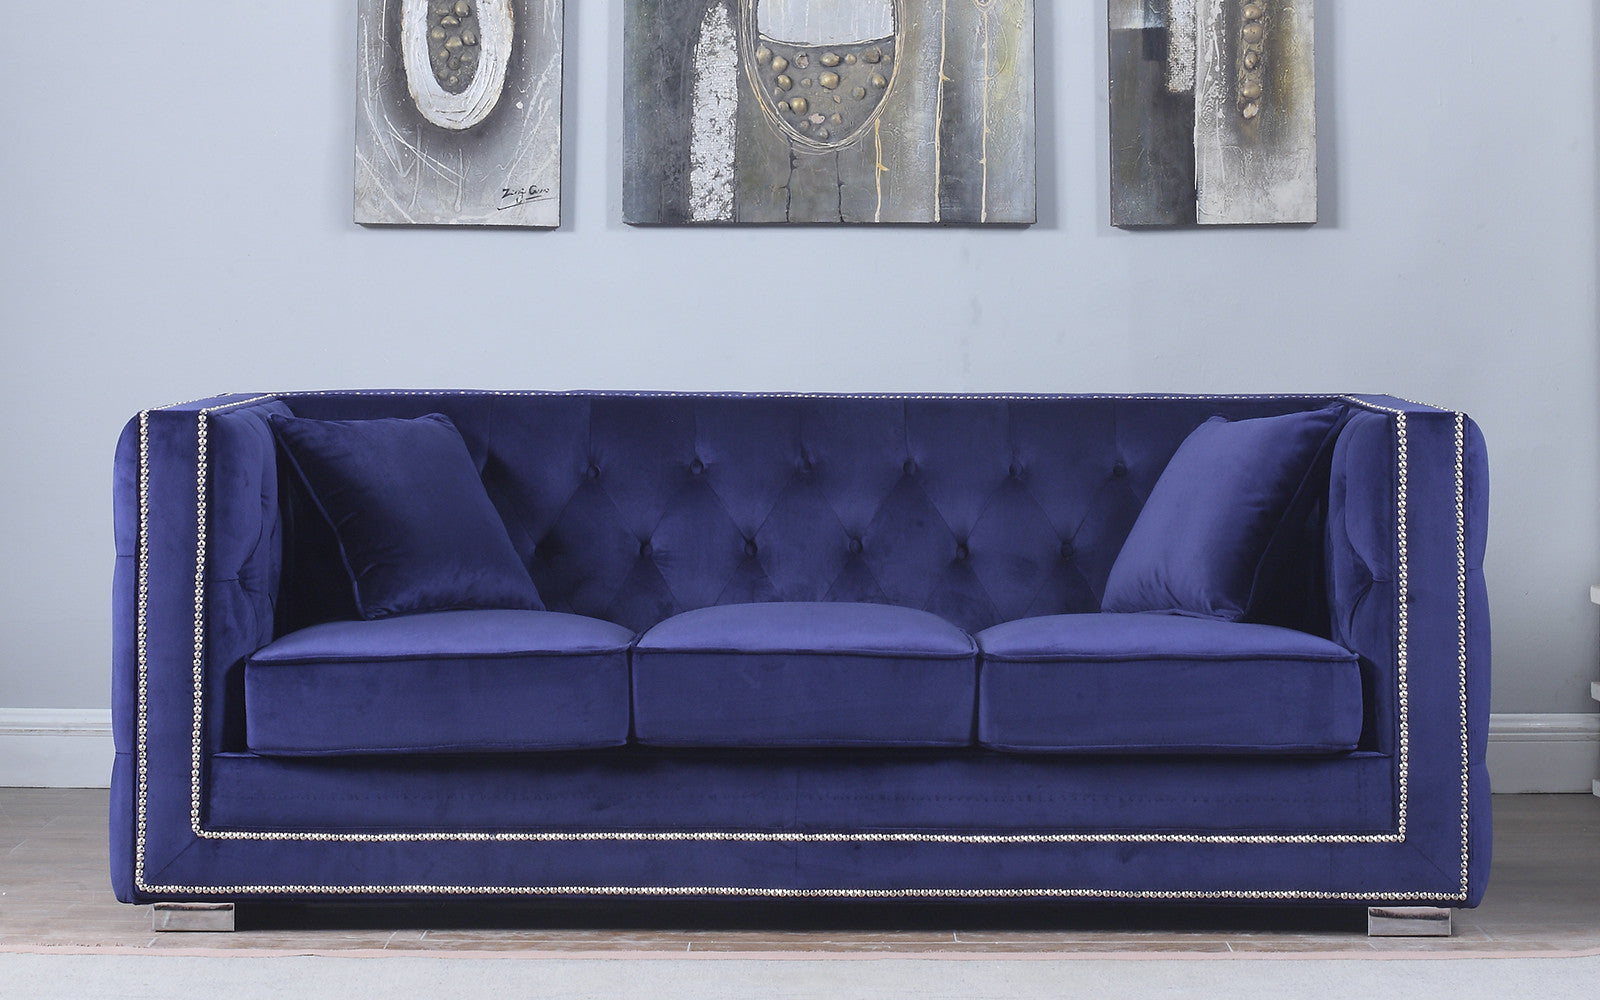 Moliere Tufted Velvet Sofa with Nailhead Trim | Sofamania.com